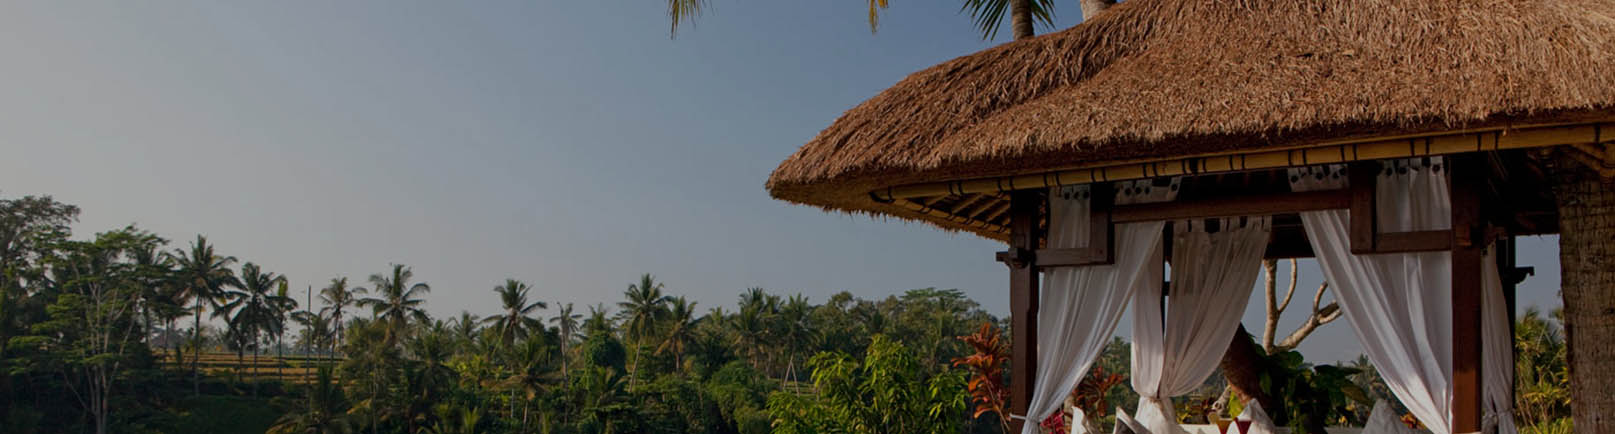 Thatched Roofs And Bali Huts Bali Huts Perth The